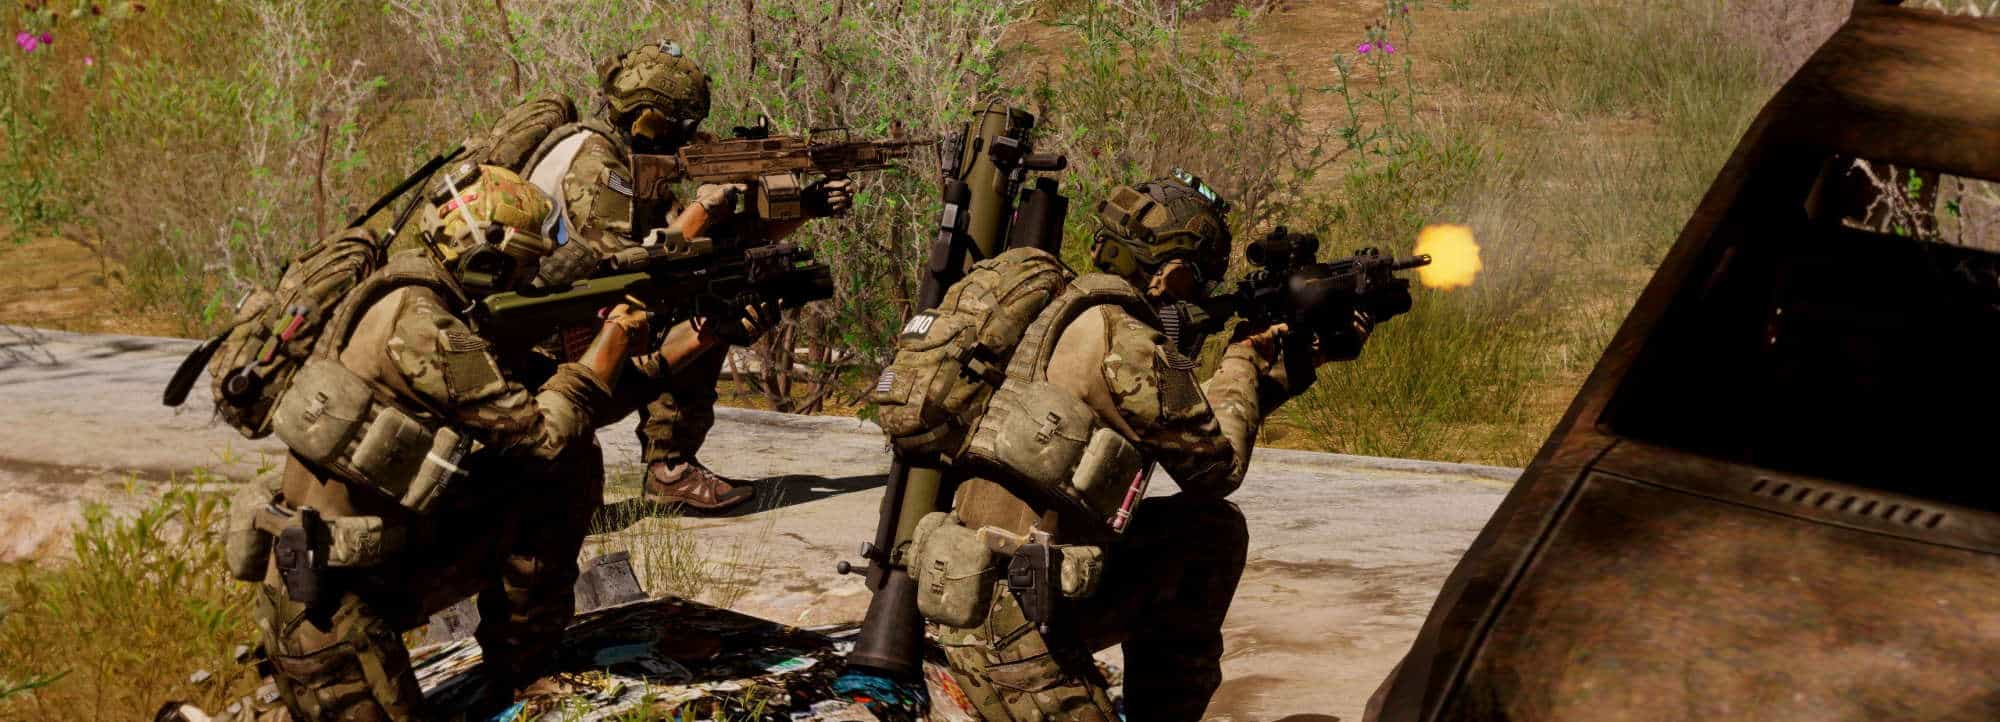 Arma 3 Fireteam movement